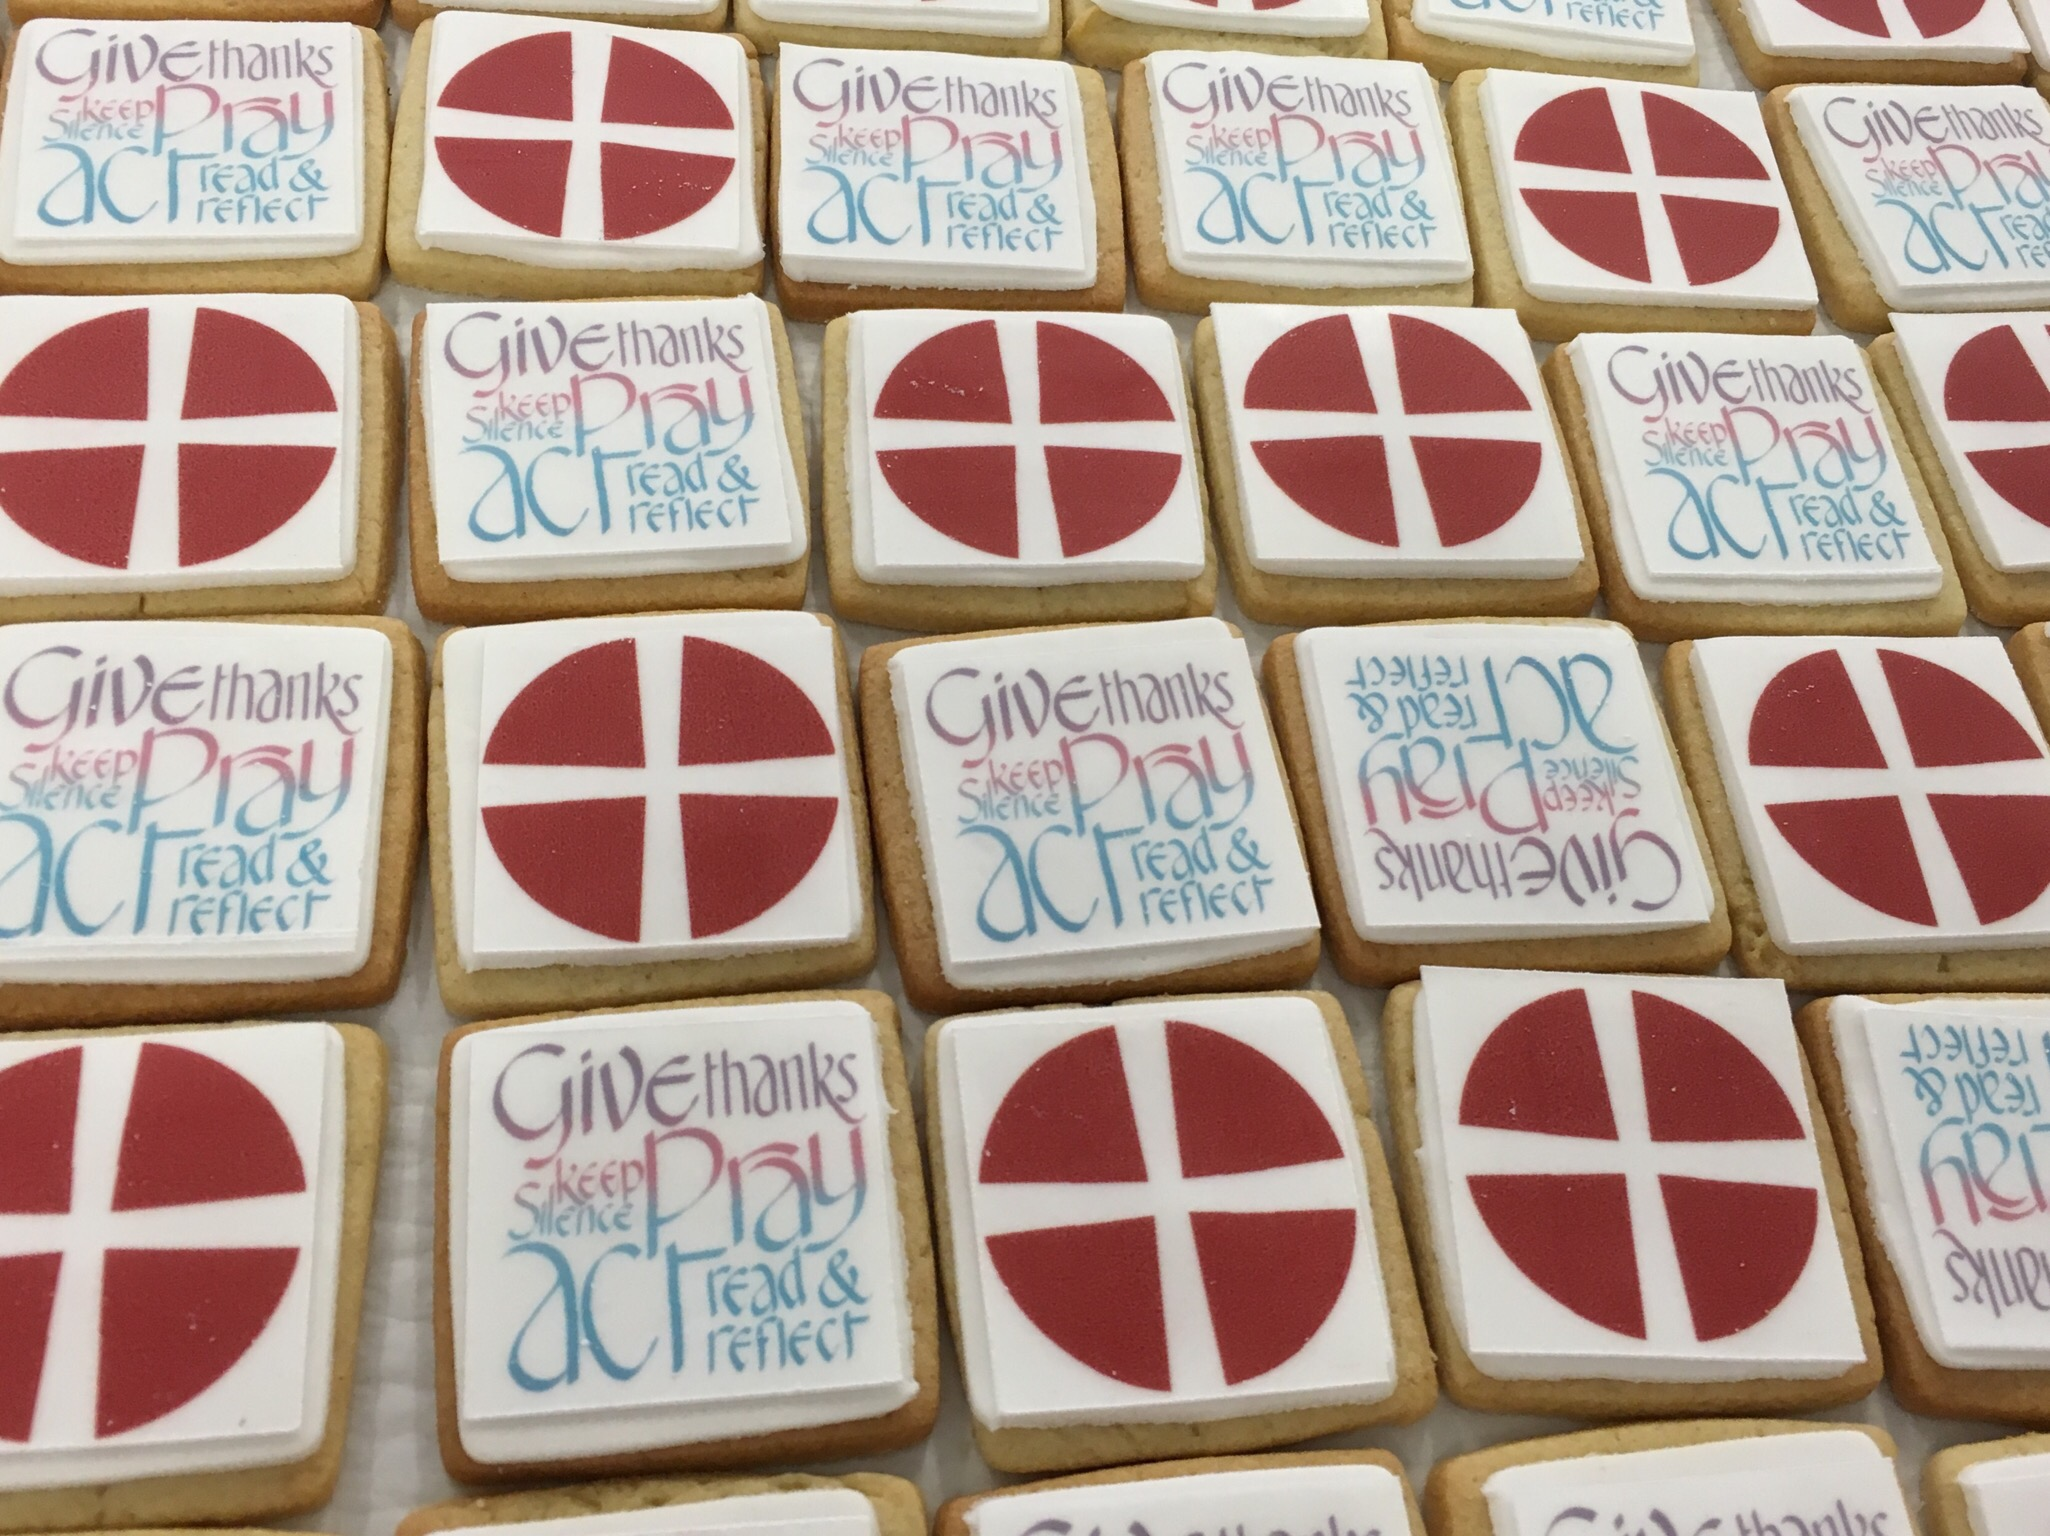 branded biscuits for the methodist church by nila holden